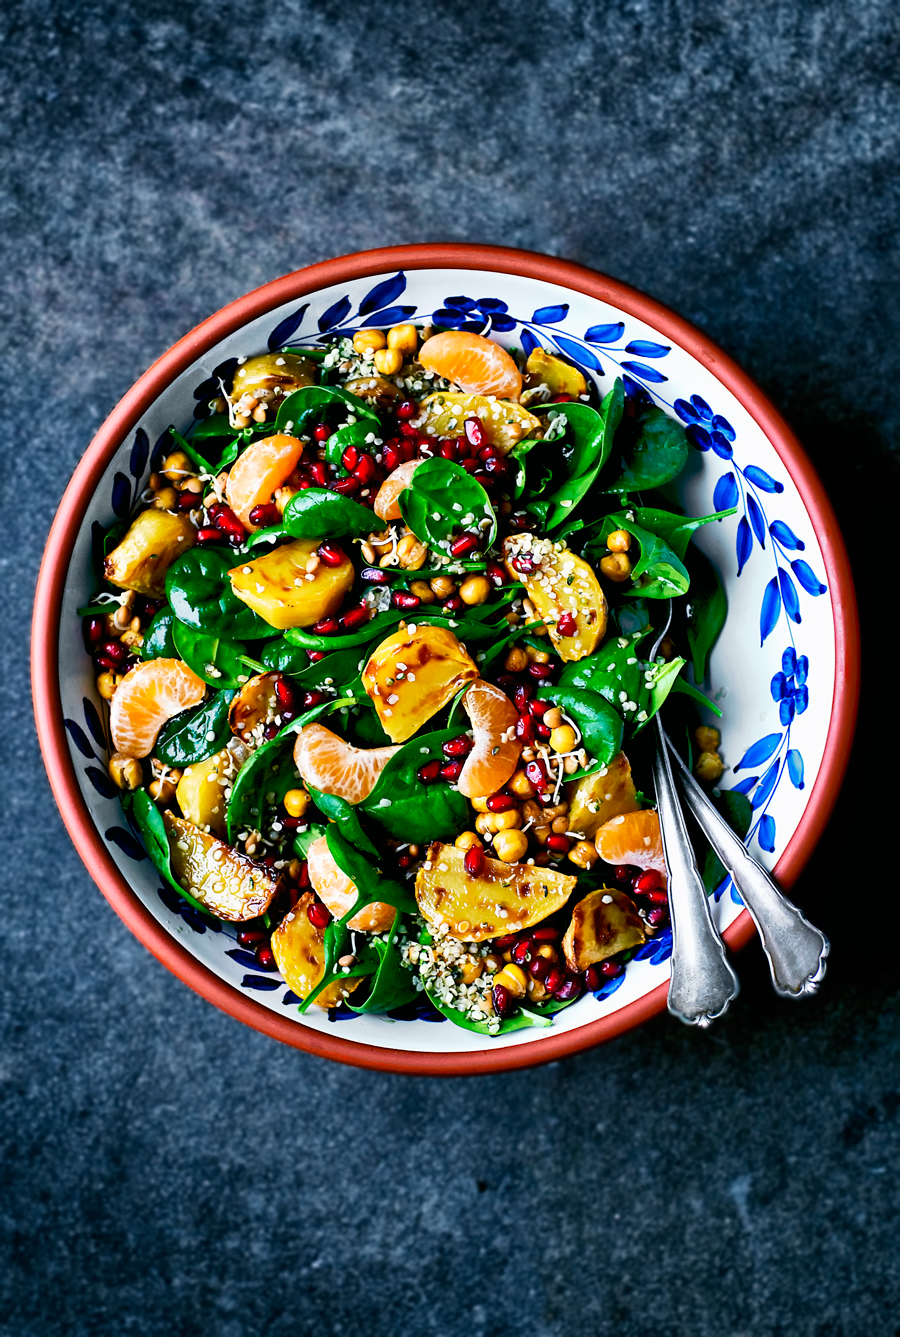 Winter Salad with Beets, Orange, and Pomegranate | occasionallyeggs.com